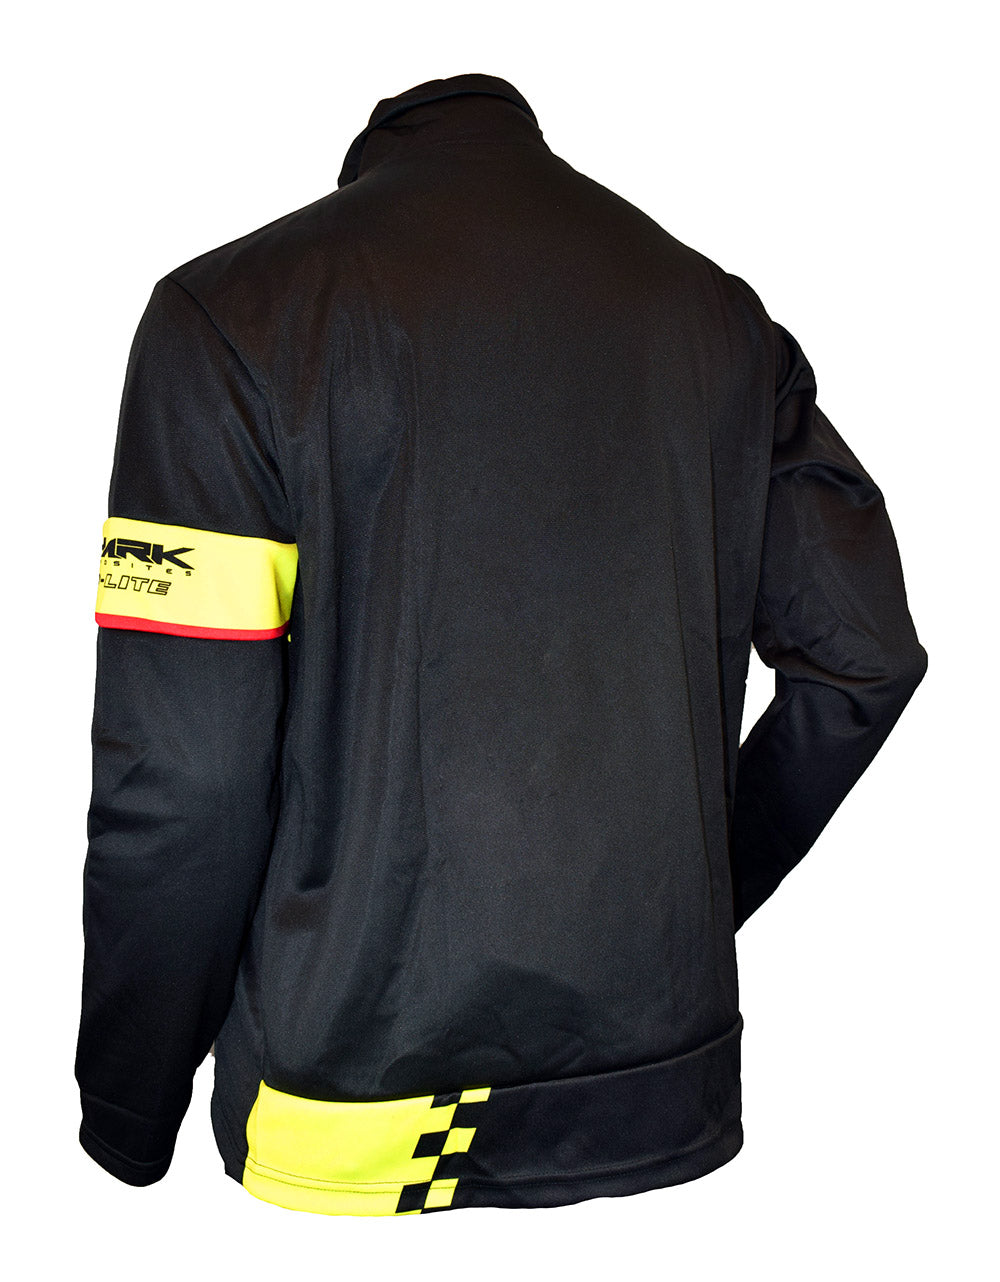 Black Fleece Casual Jacket - Velochampion